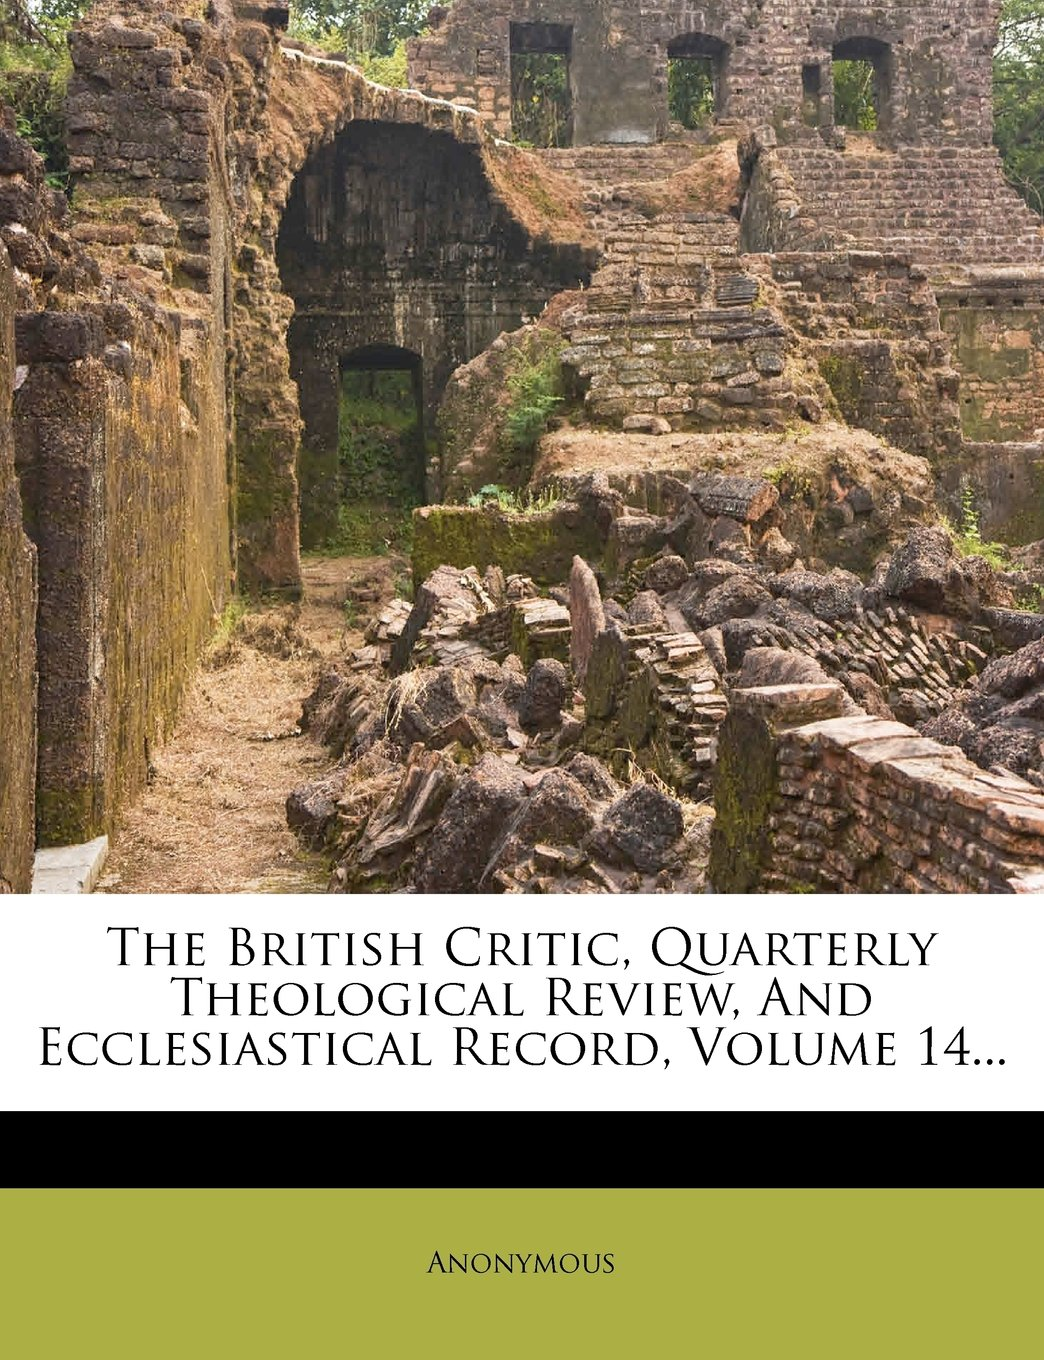 Download The British Critic, Quarterly Theological Review, And Ecclesiastical Record, Volume 14... pdf